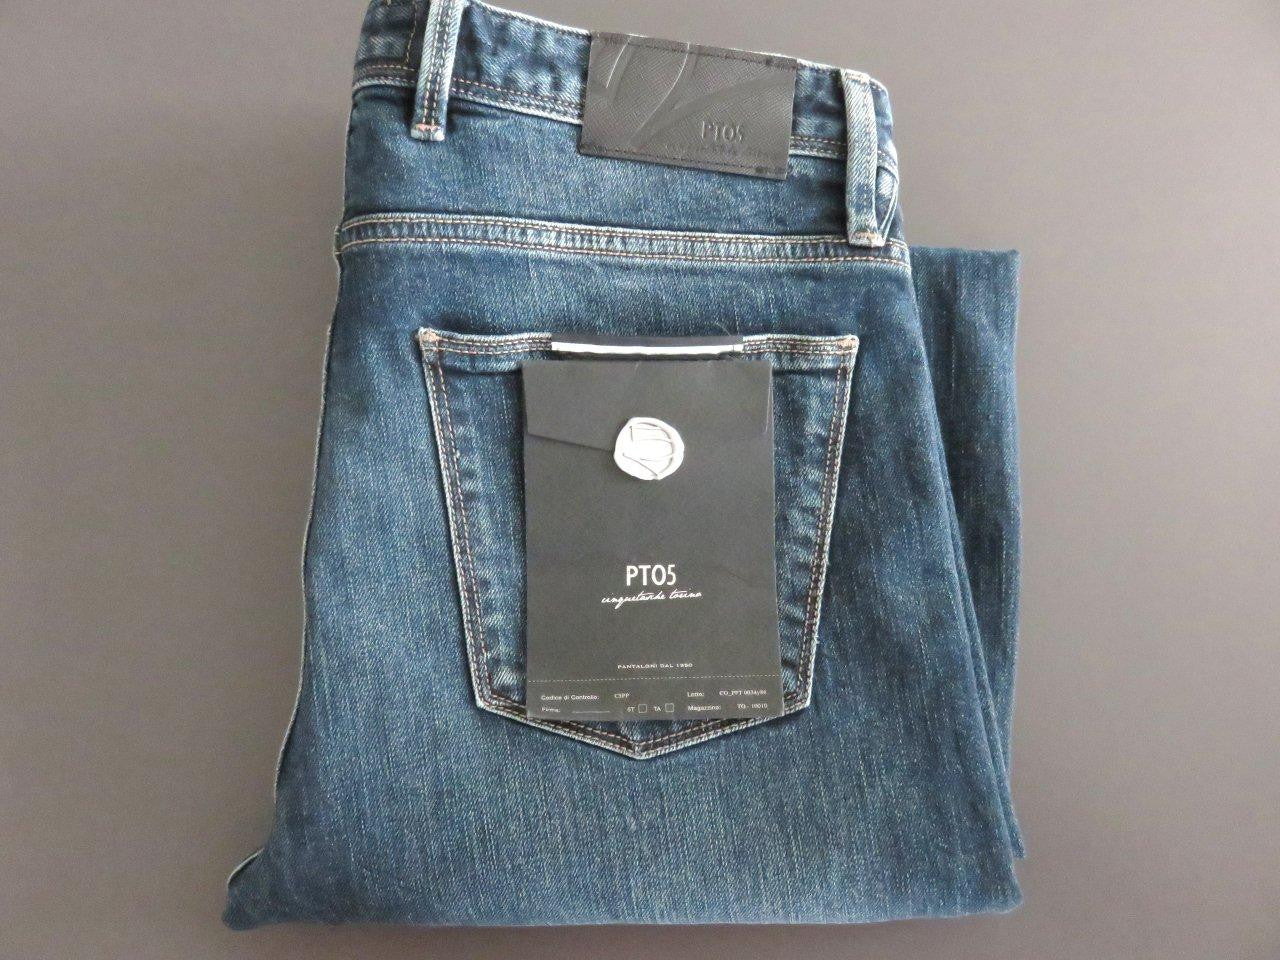 PT01 Pantaloni Torino - PT05 - Mod. Denim Stretch bluejeans